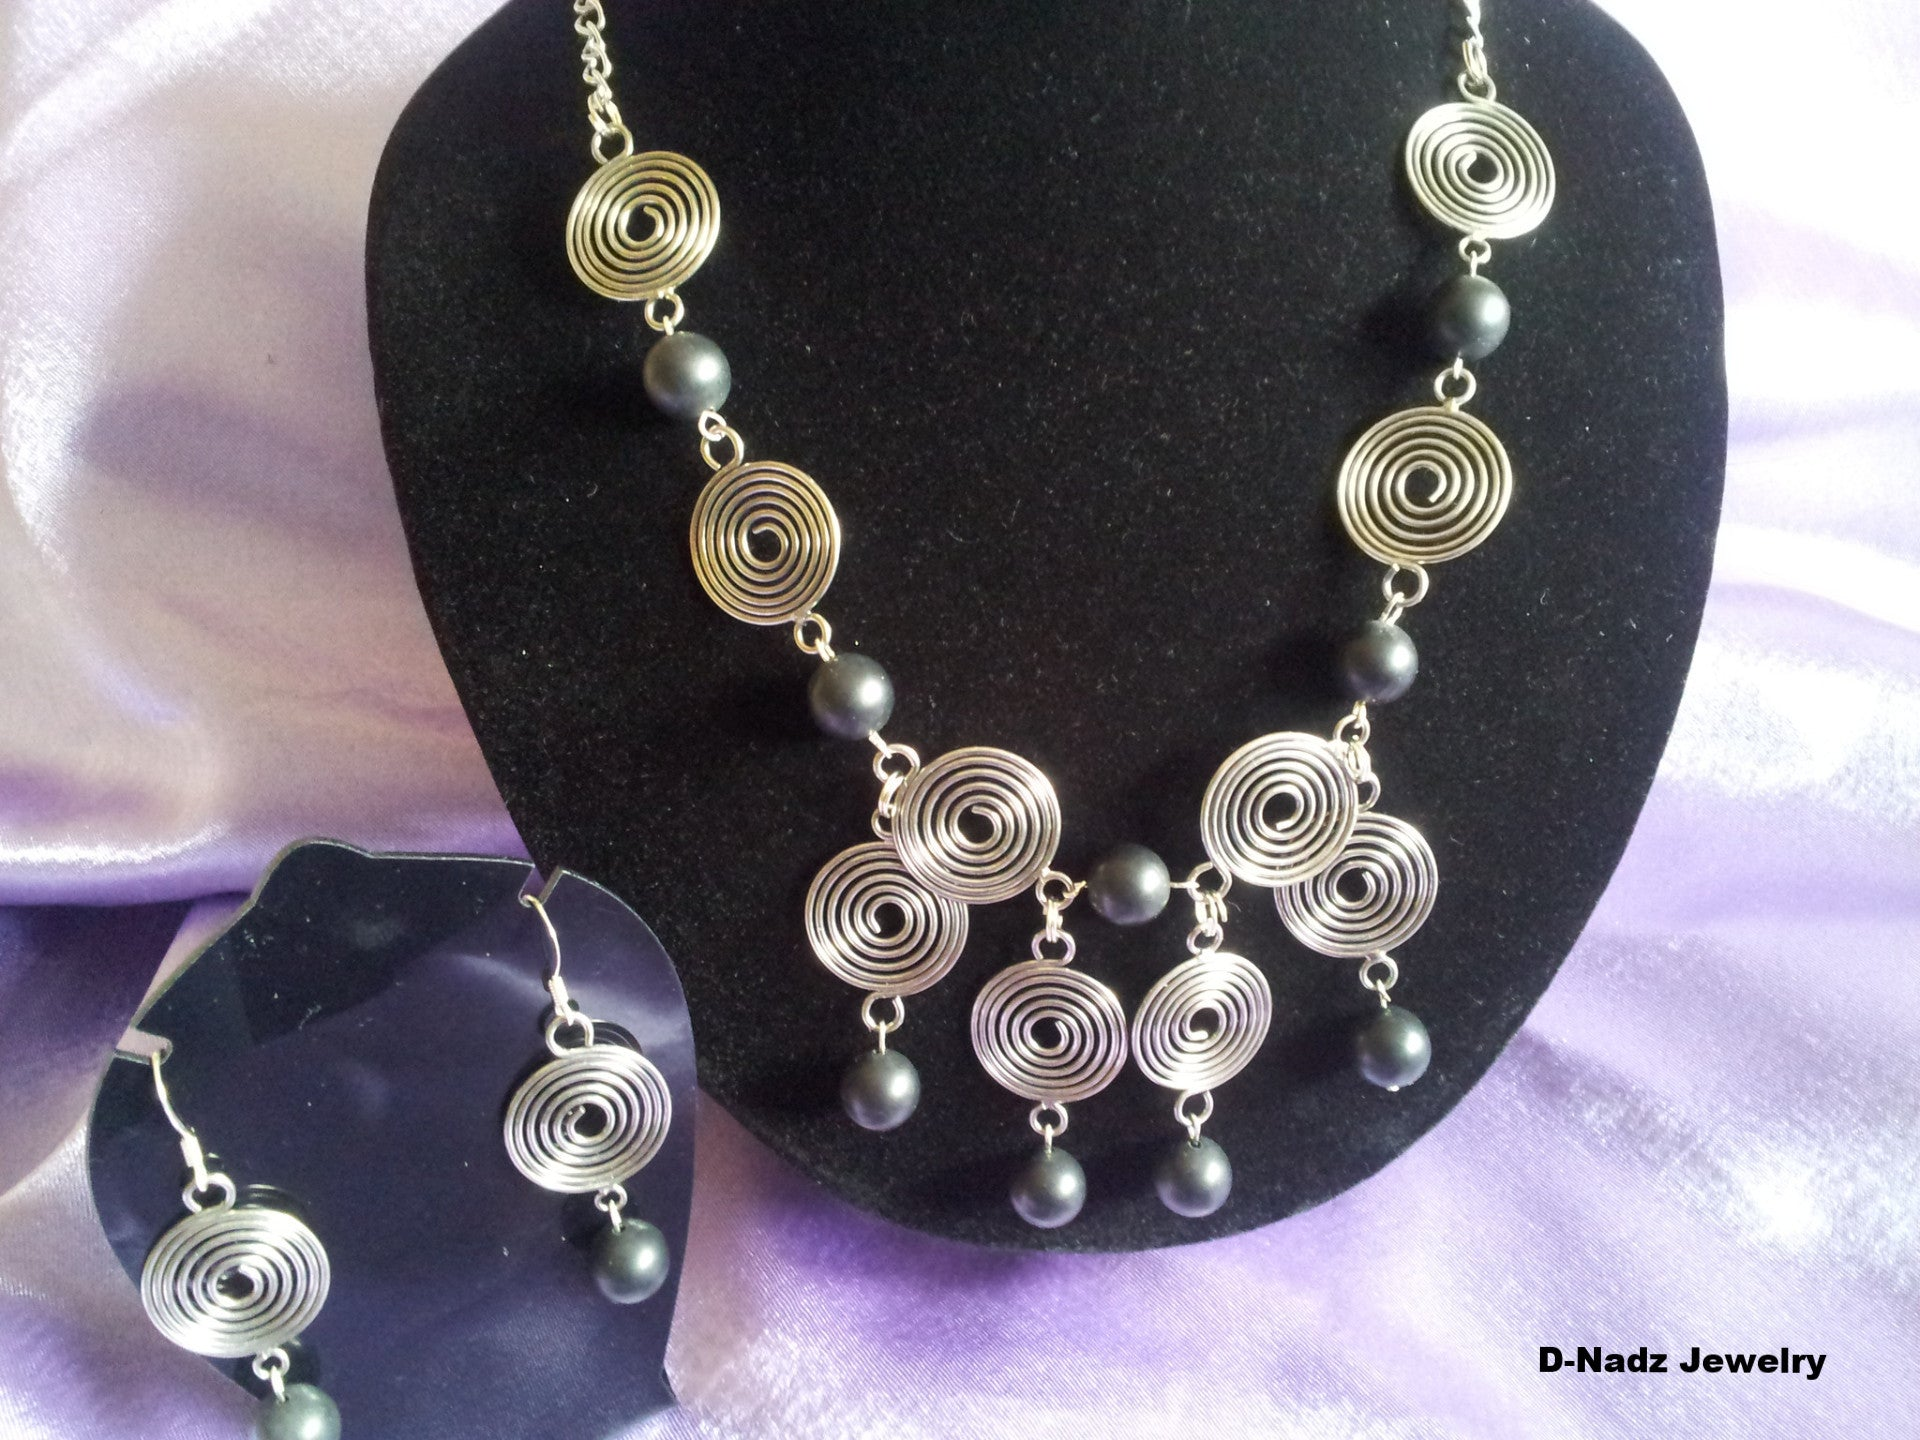 Balls & Swirls - D-Nadz Jewelry